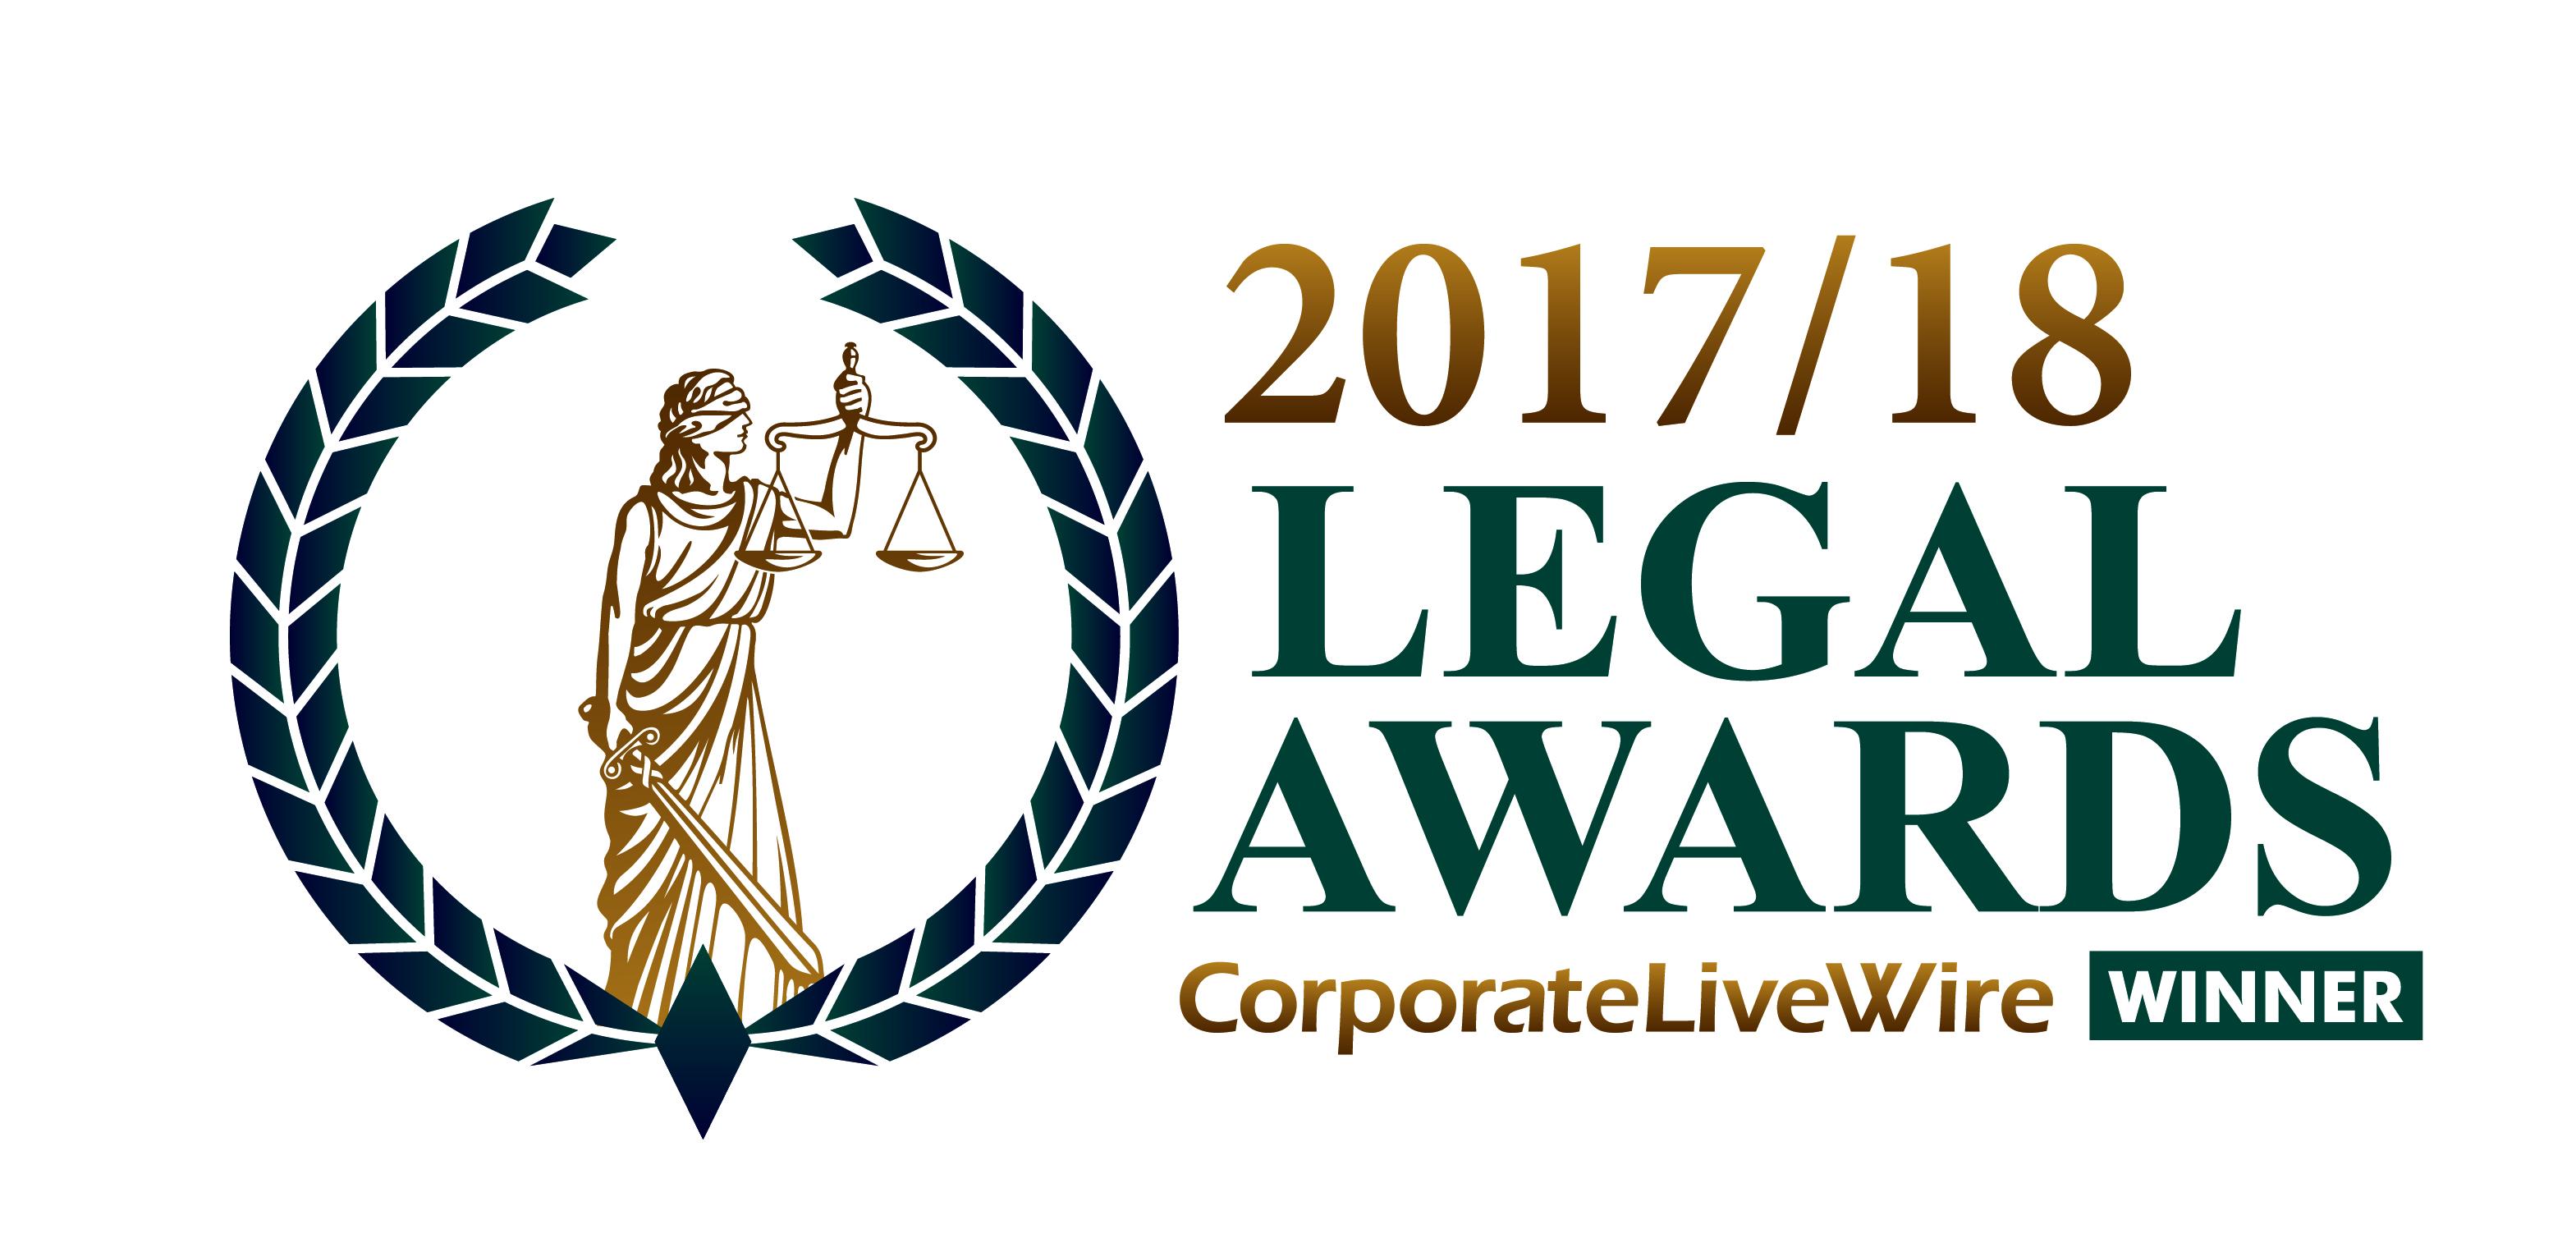 Corporate LiveWire Awards 2016